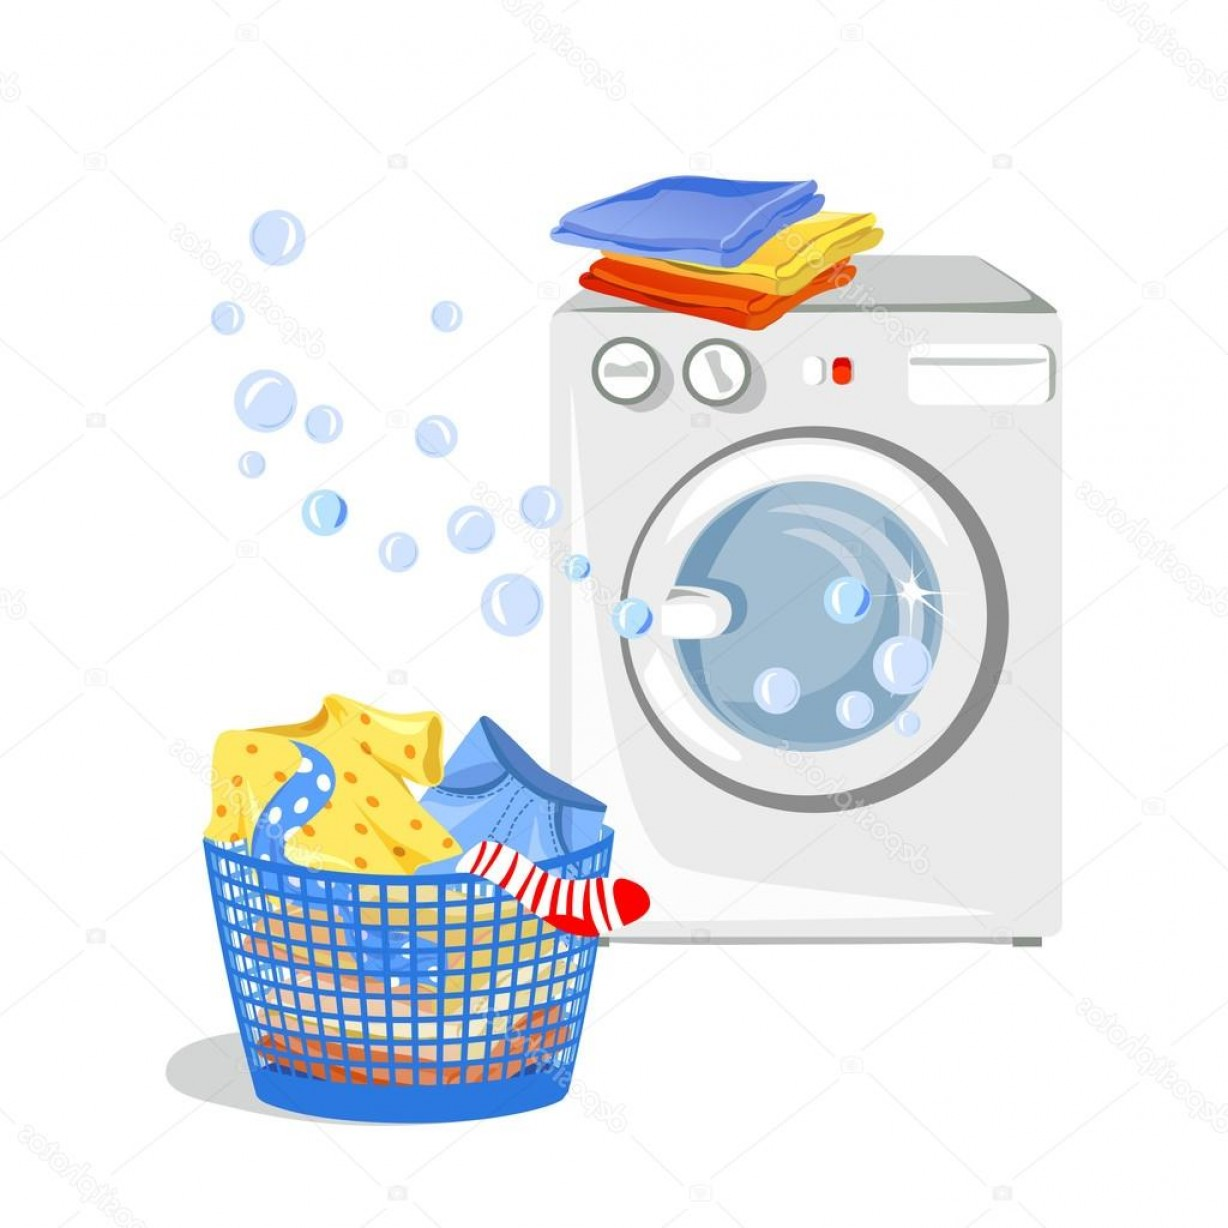 Clothes For Washing Vector: Stock Illustration Washing Machine And Clean Clothes